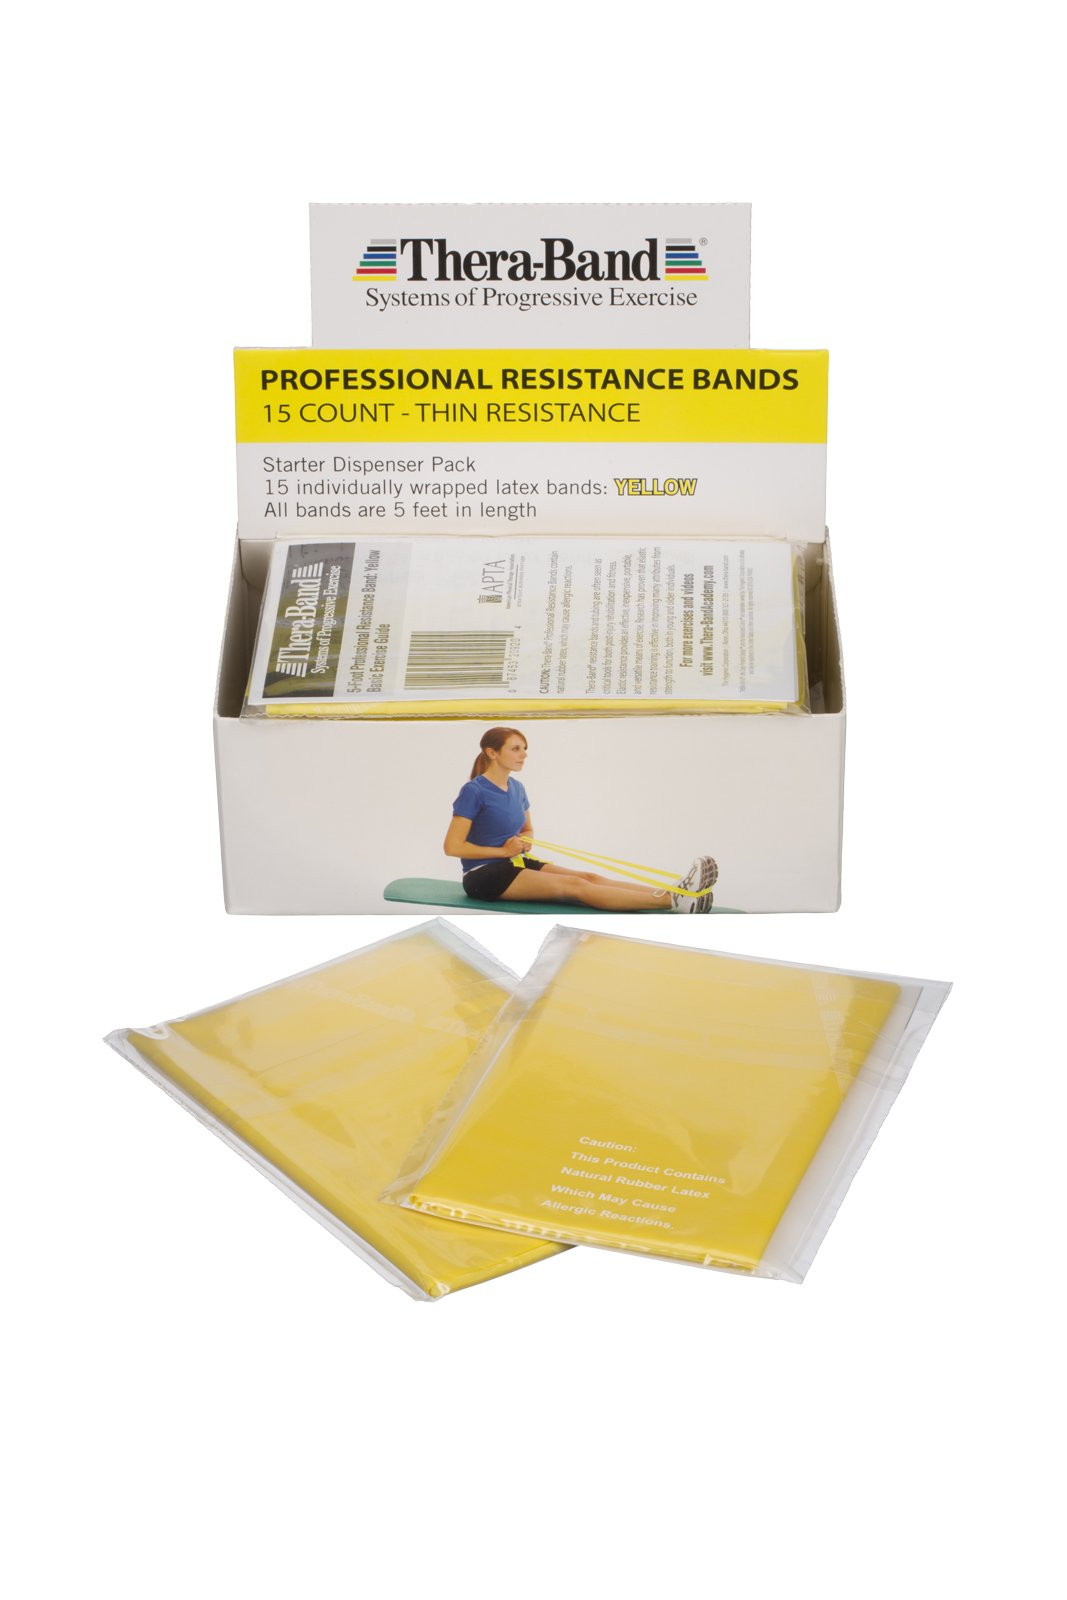 TheraBand Resistance Bands, 5 Foot, 15 Count Professional Latex Elastic Bands For Upper & Lower Body Exercise, Physical Therapy, Pilates, Home Workouts, Rehab, Yellow, Thin, Beginner Level 2